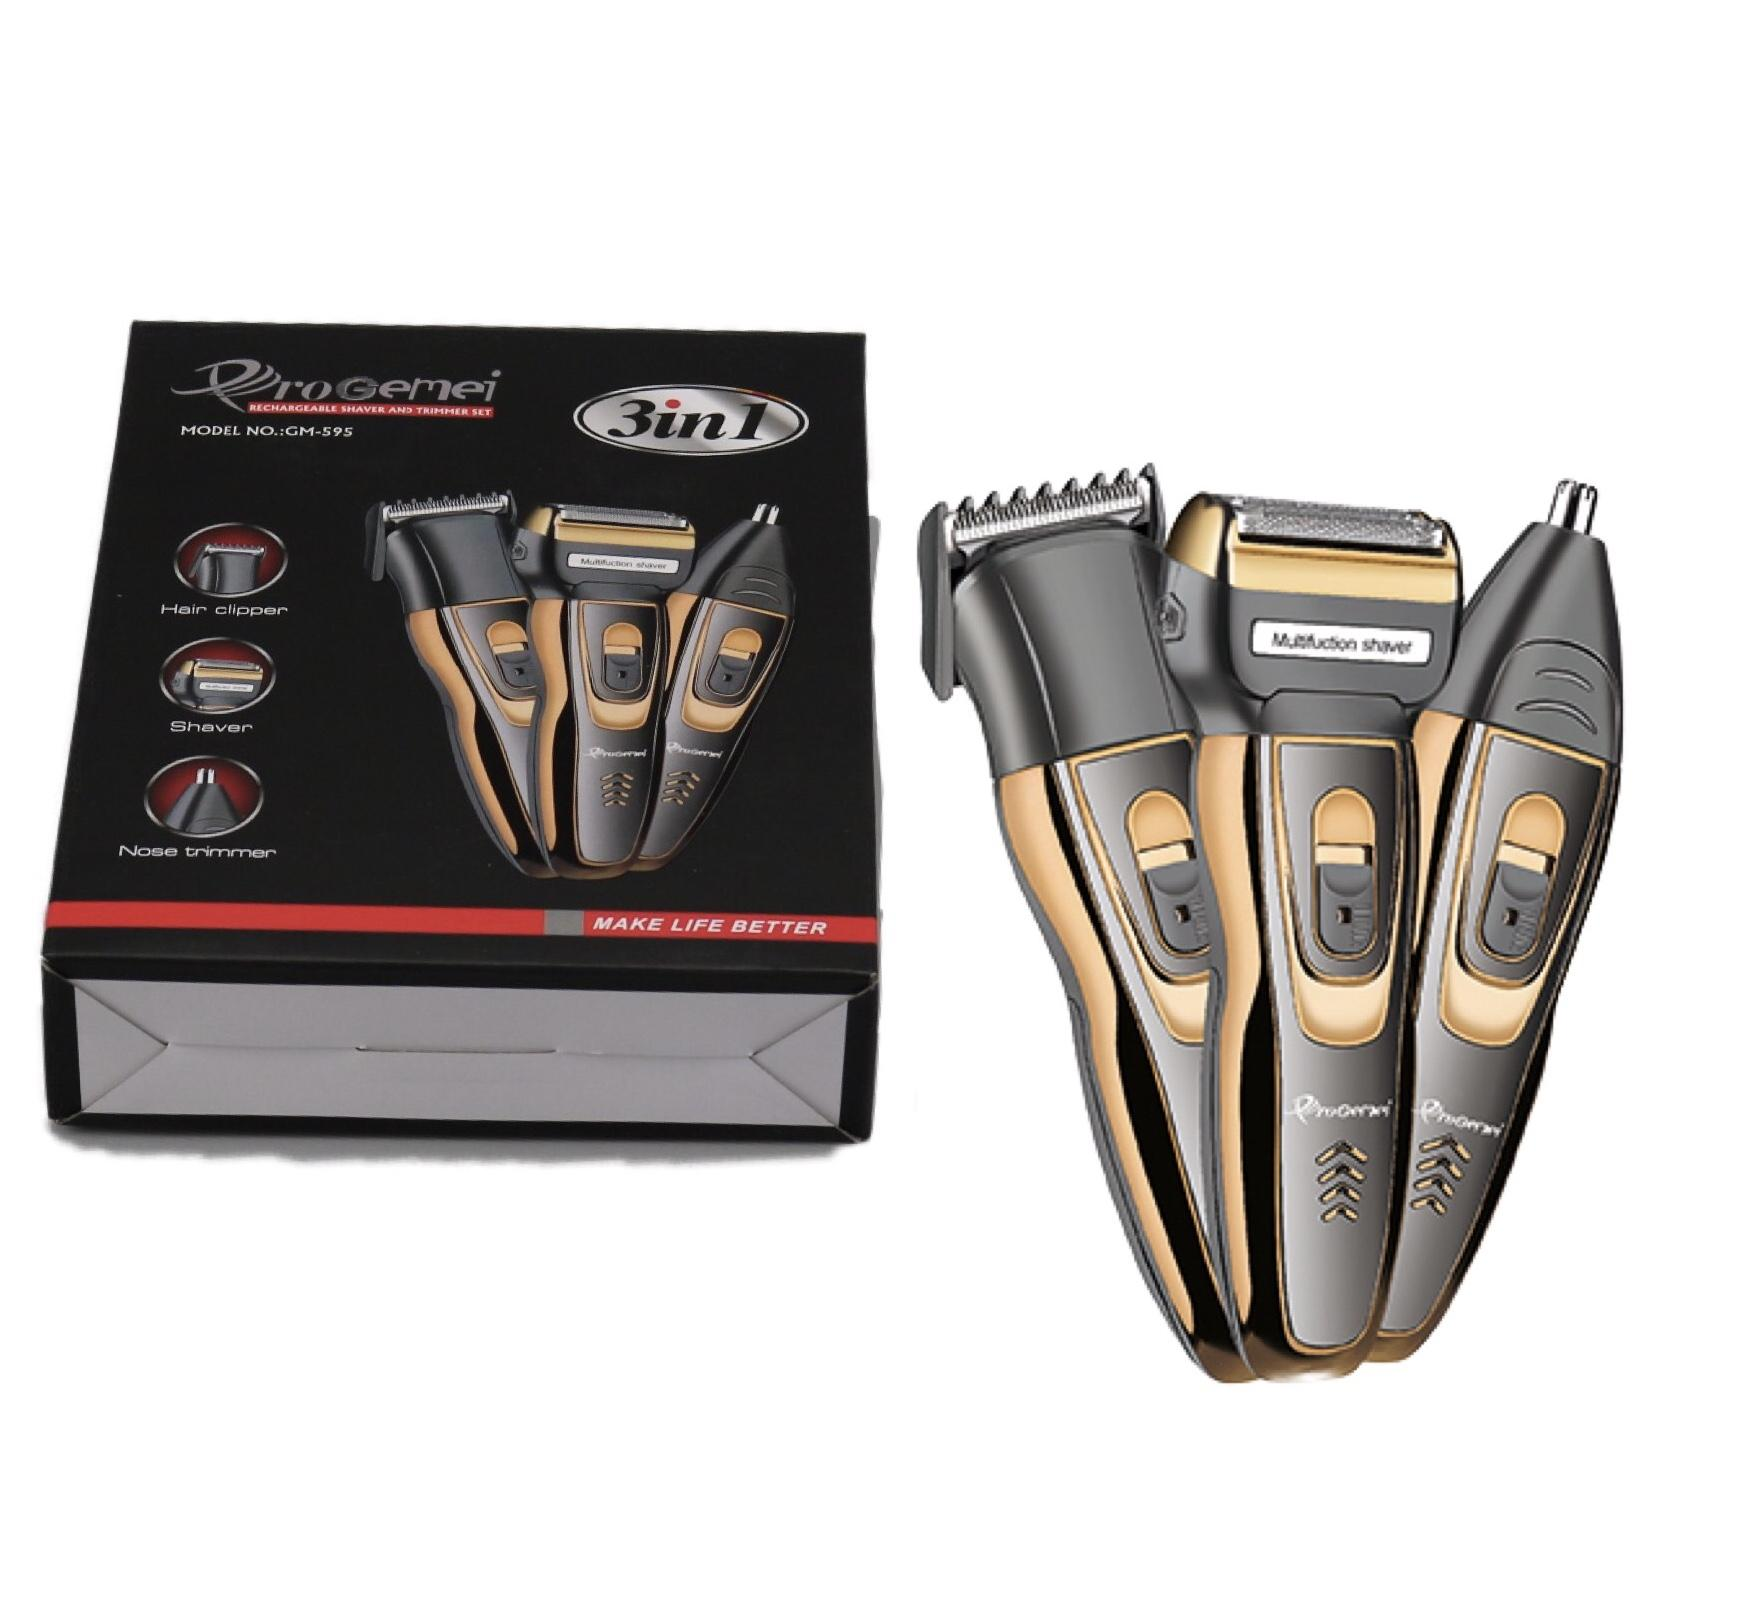 Mens Trimmer Price In Nepal - Buy Hair Trimmer Online - Daraz.com.np